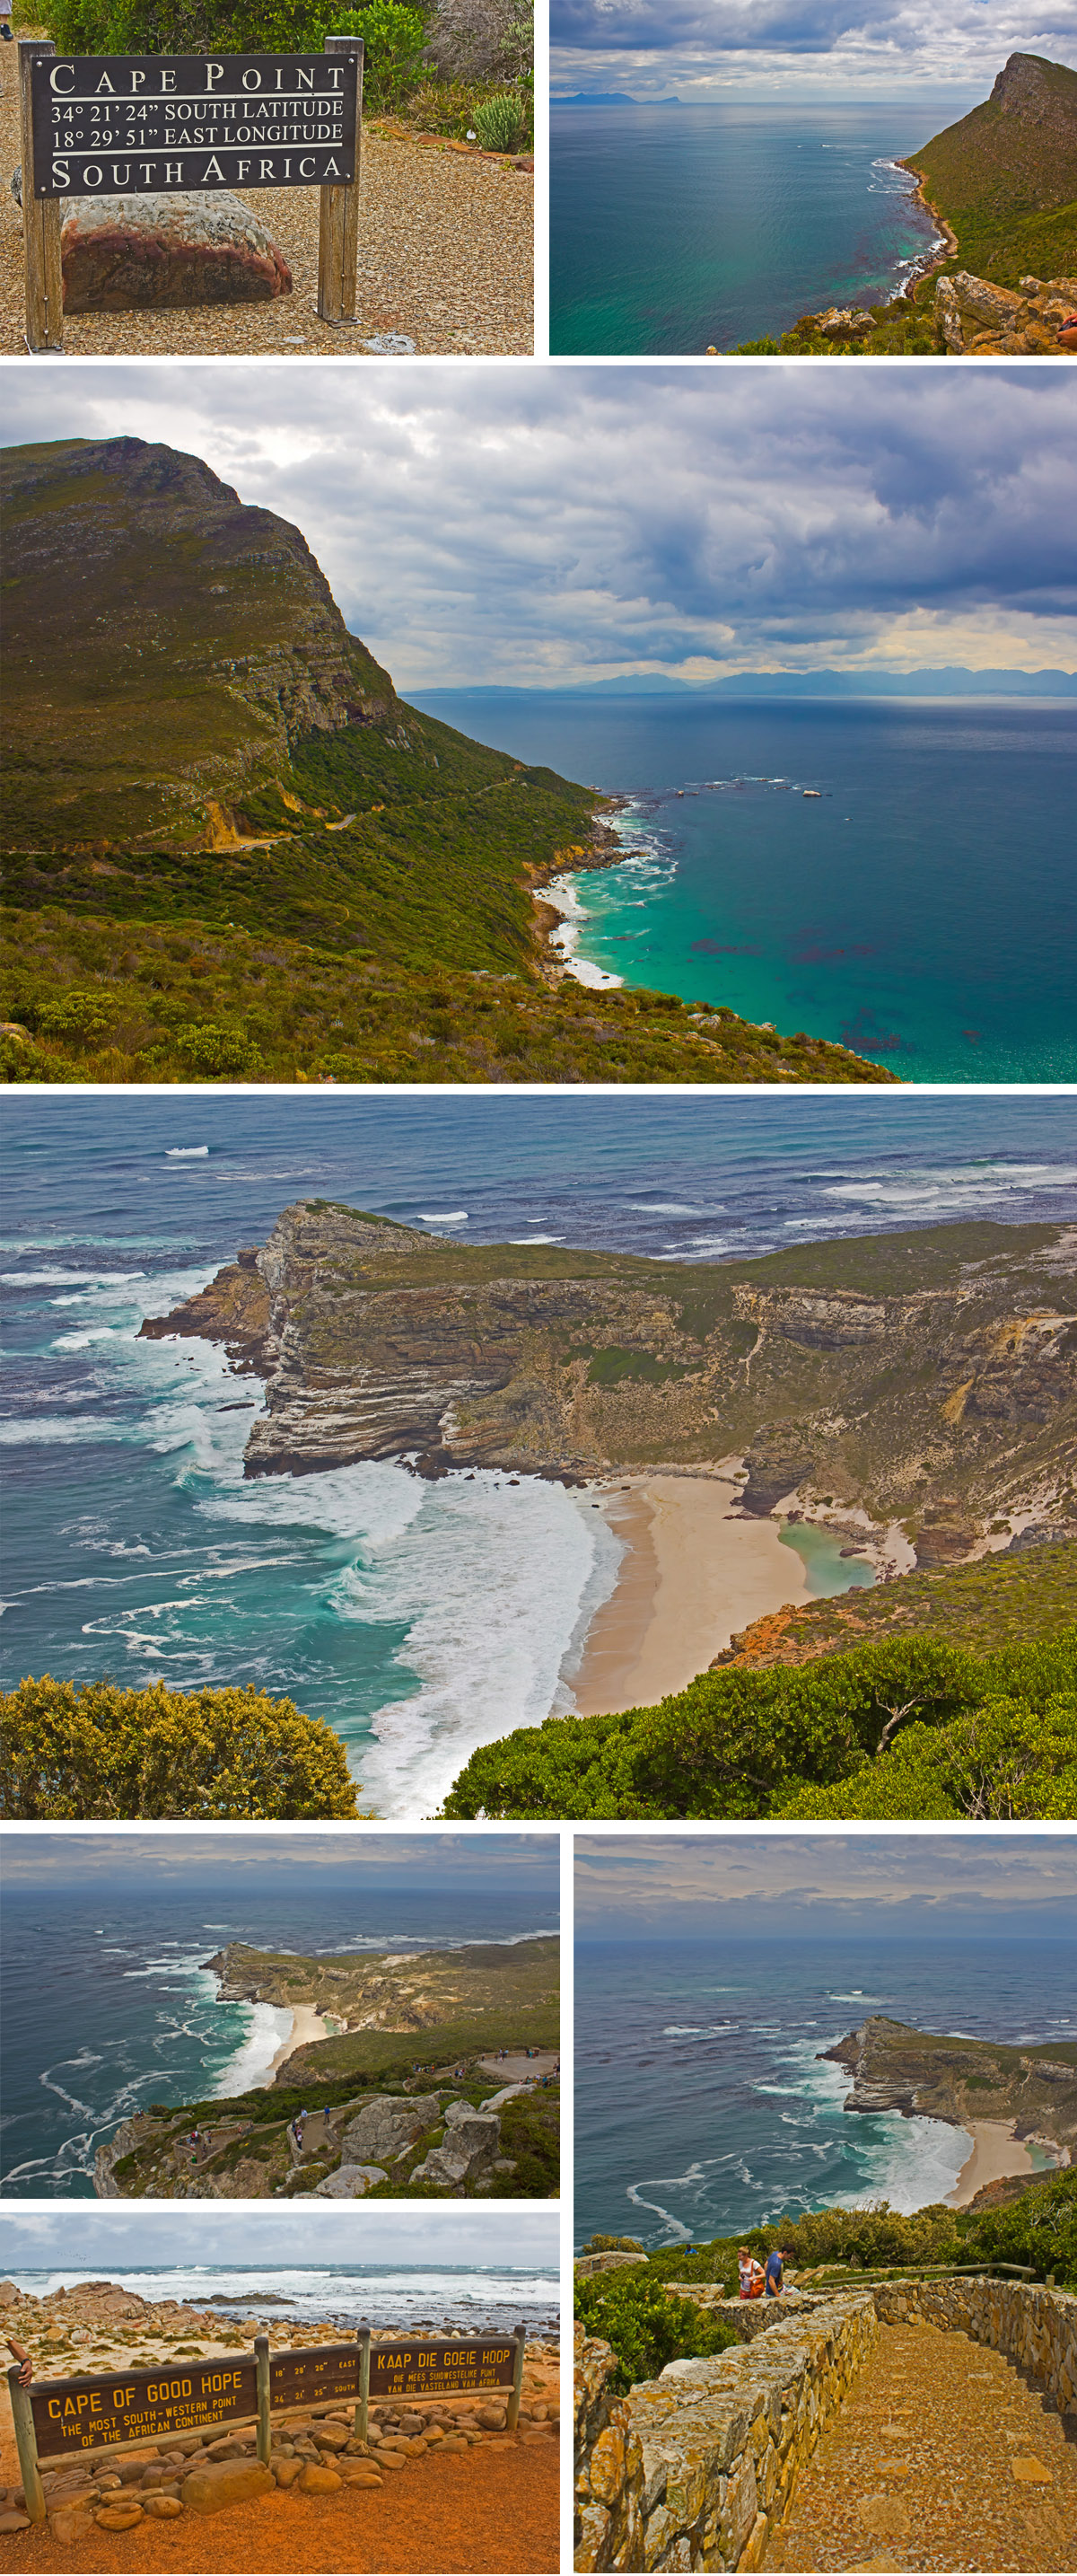 Blue Monkey Tours Review - Cape Point, South Africa